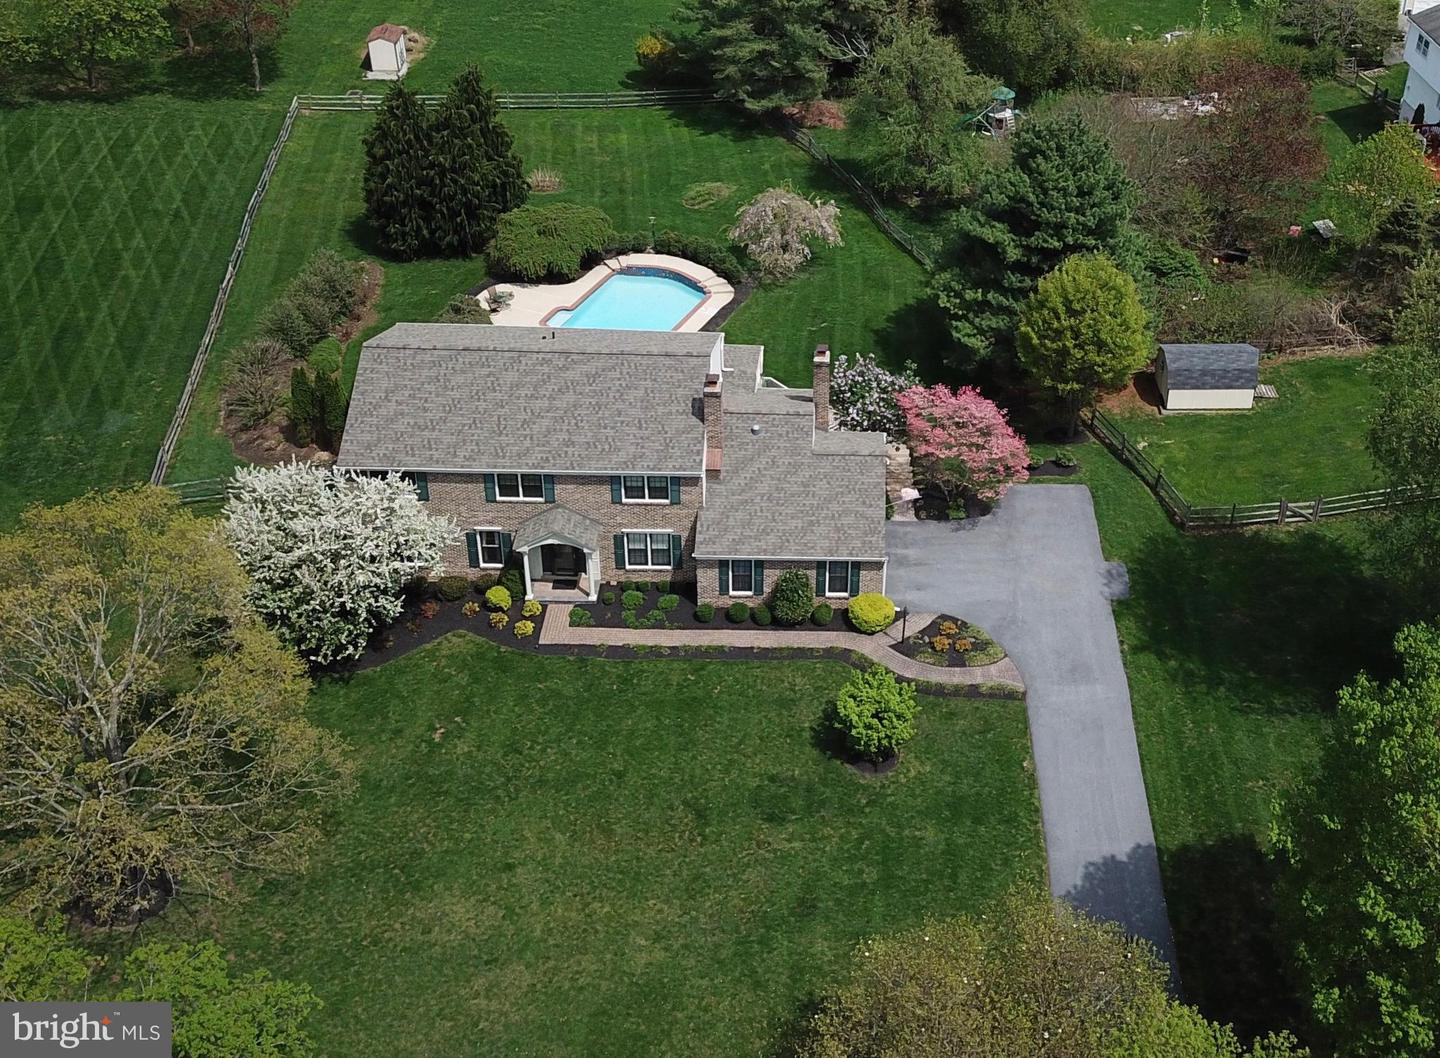 1309 N Tulip Drive West Chester, PA 19380